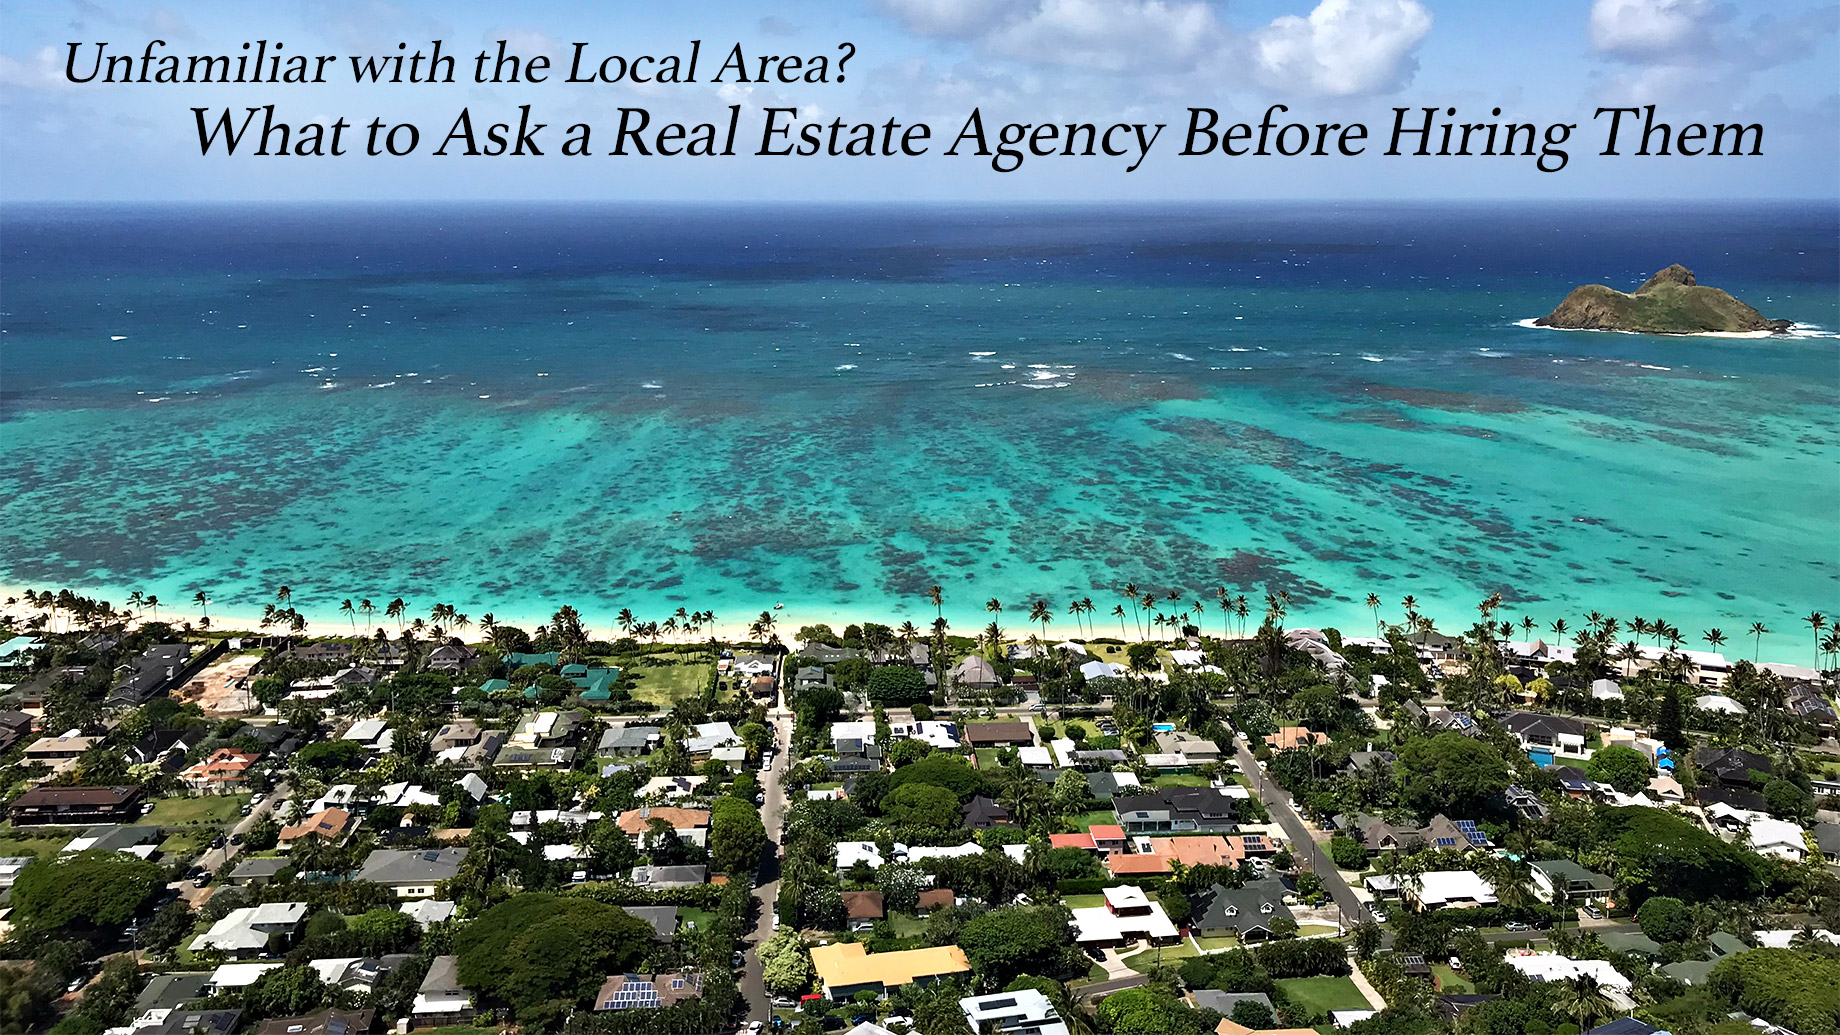 Unfamiliar with the Local Area? What to Ask a Real Estate Agency Before Hiring Them